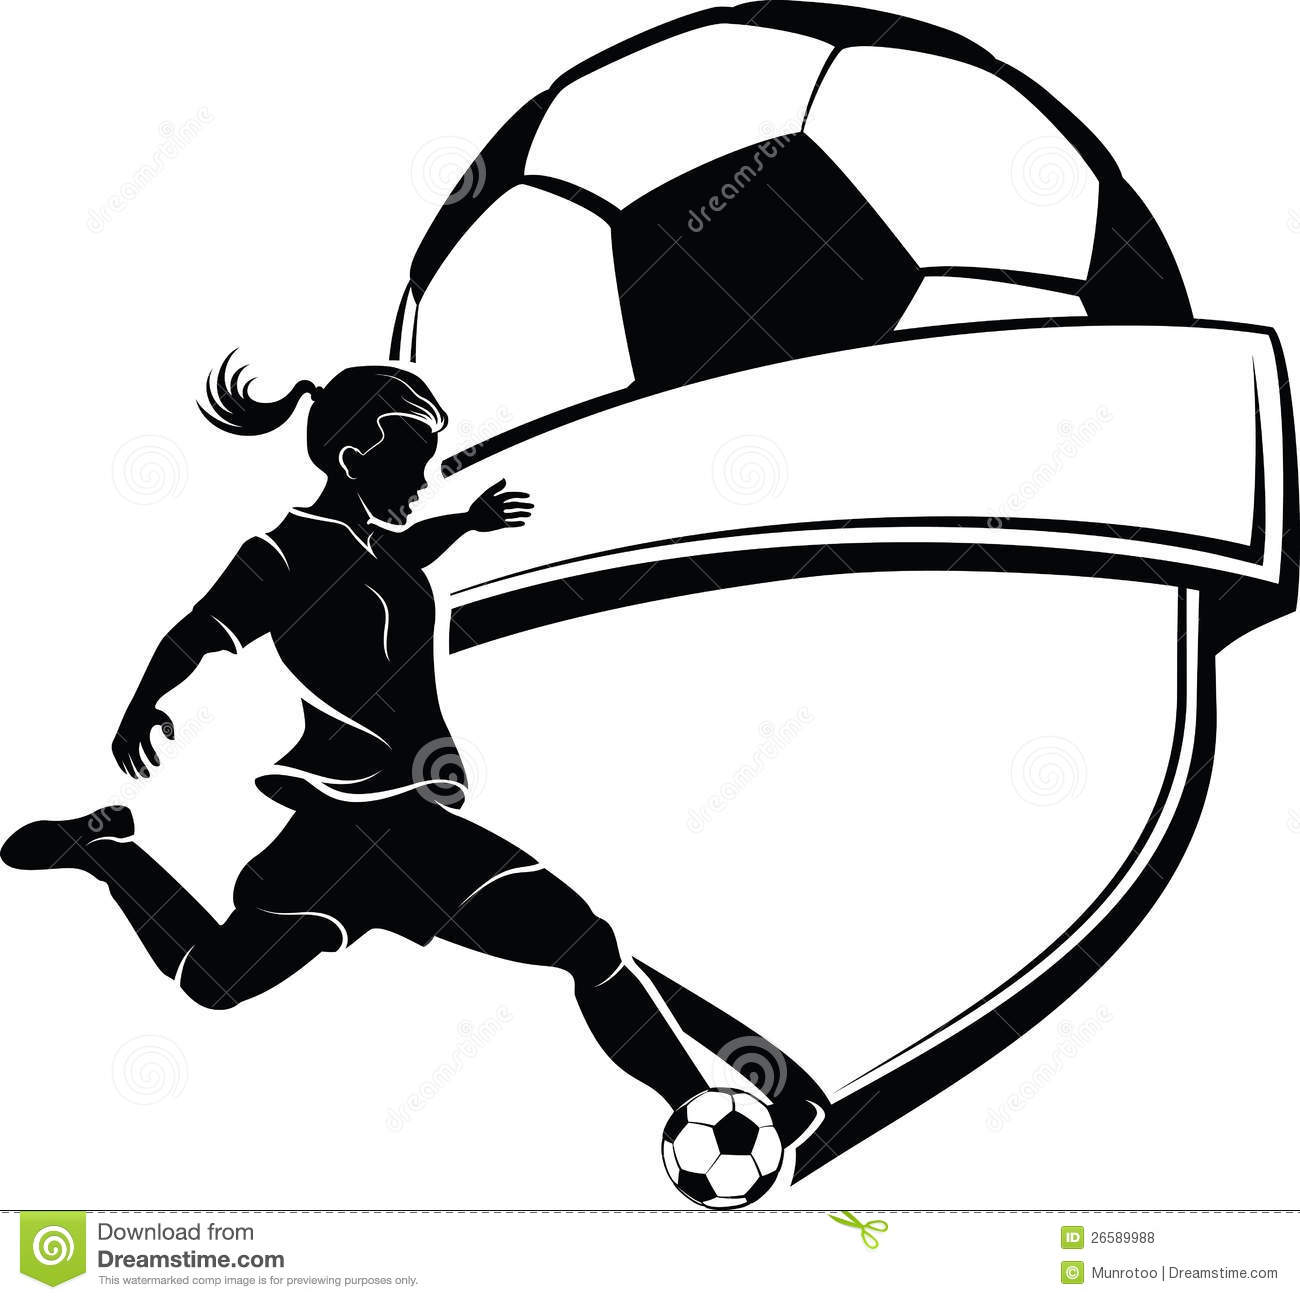 Youth soccer clipart banner svg black and white stock Girls Soccer Ball Cliparts - Free Clipart svg black and white stock